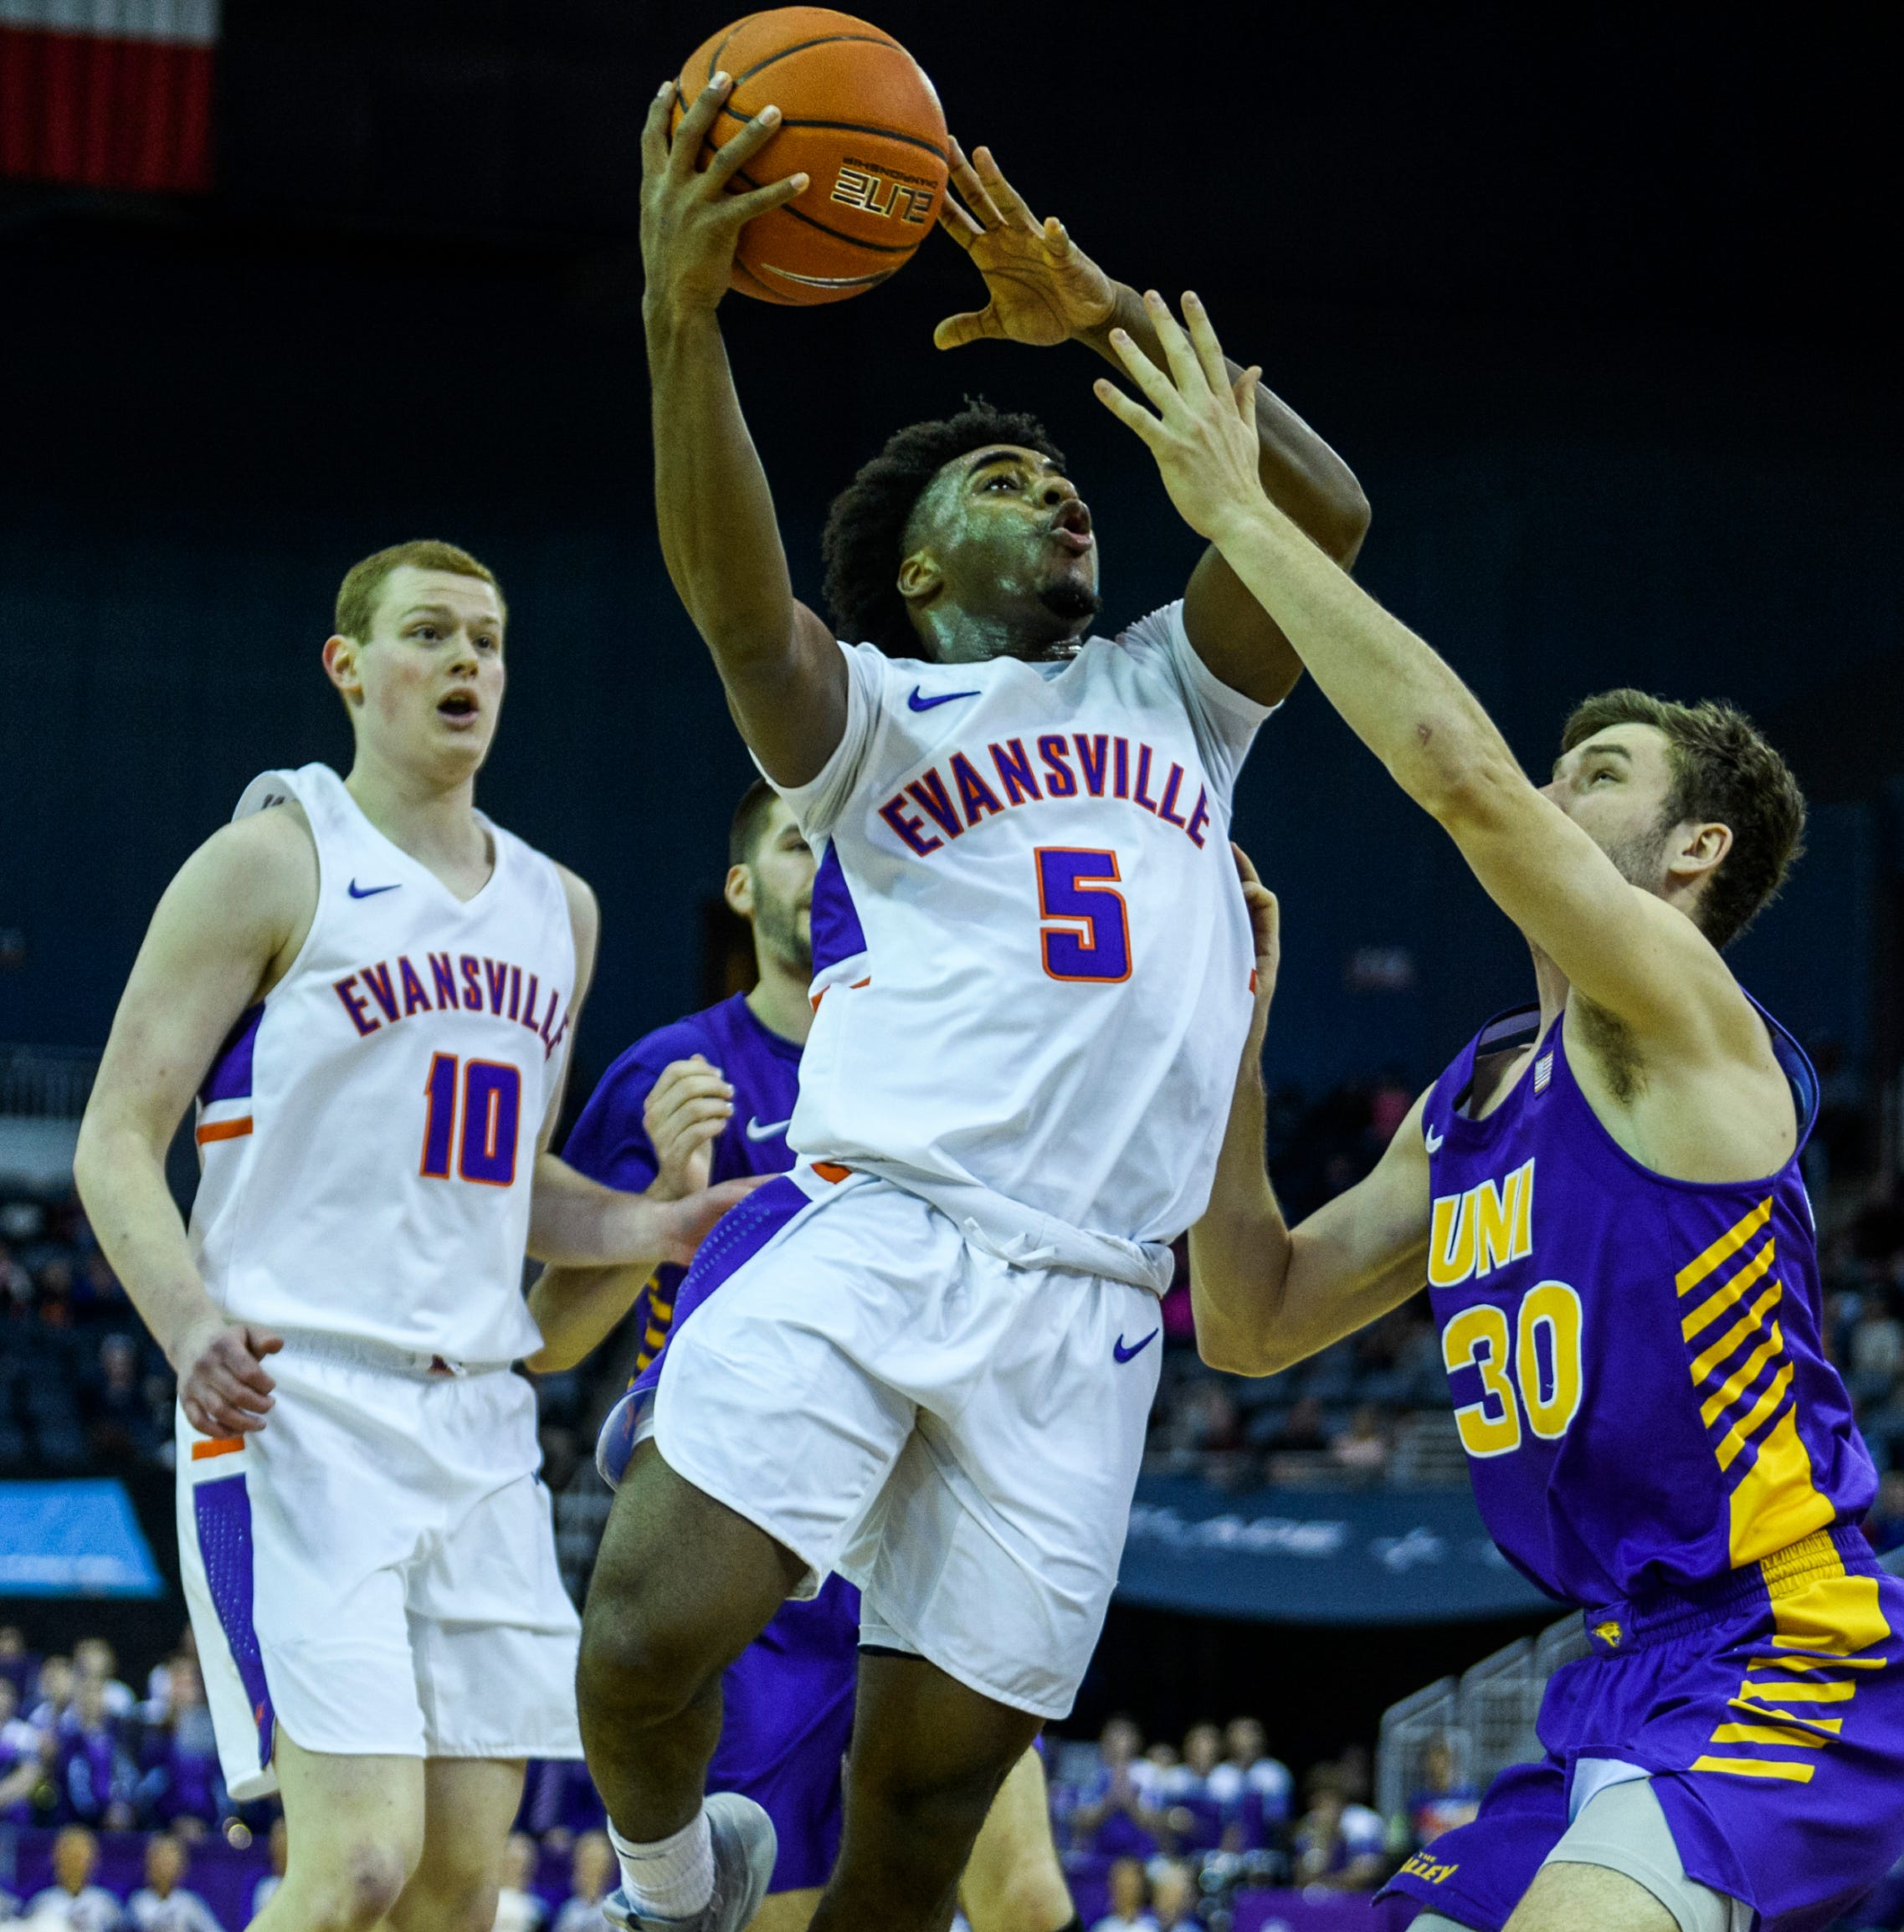 Another slow start plagues Evansville in home loss to Northern Iowa